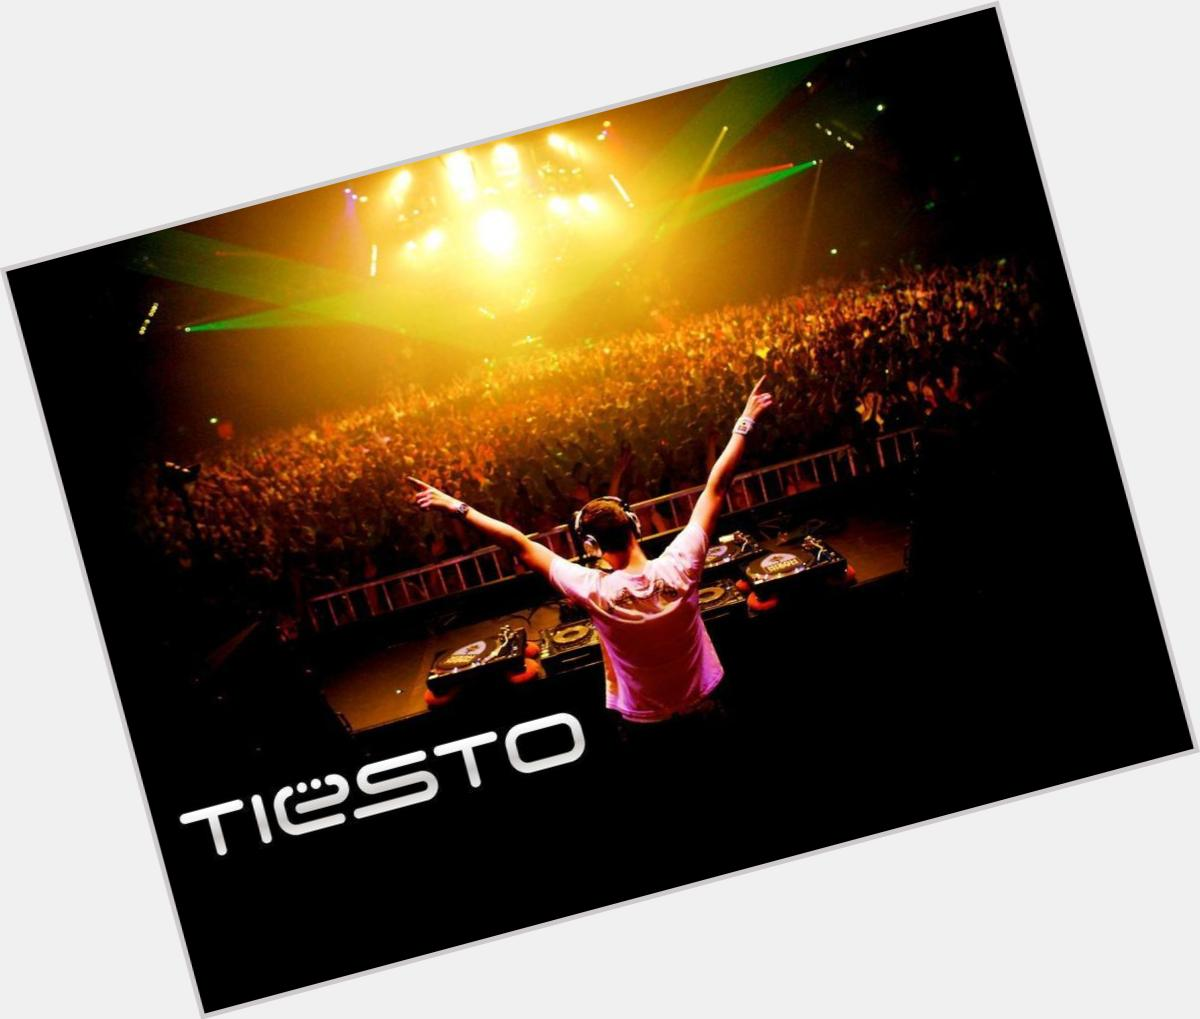 Tiesto birthday 2015